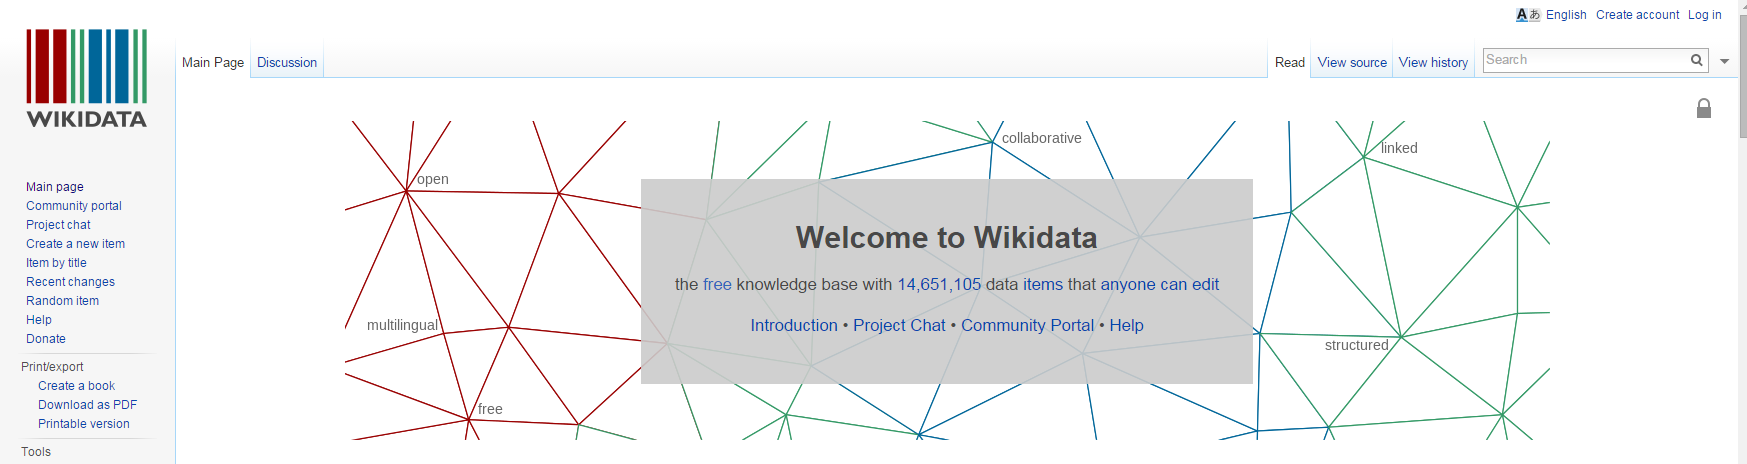 Wikidata website scheduled to be absorbing all Freebase Data